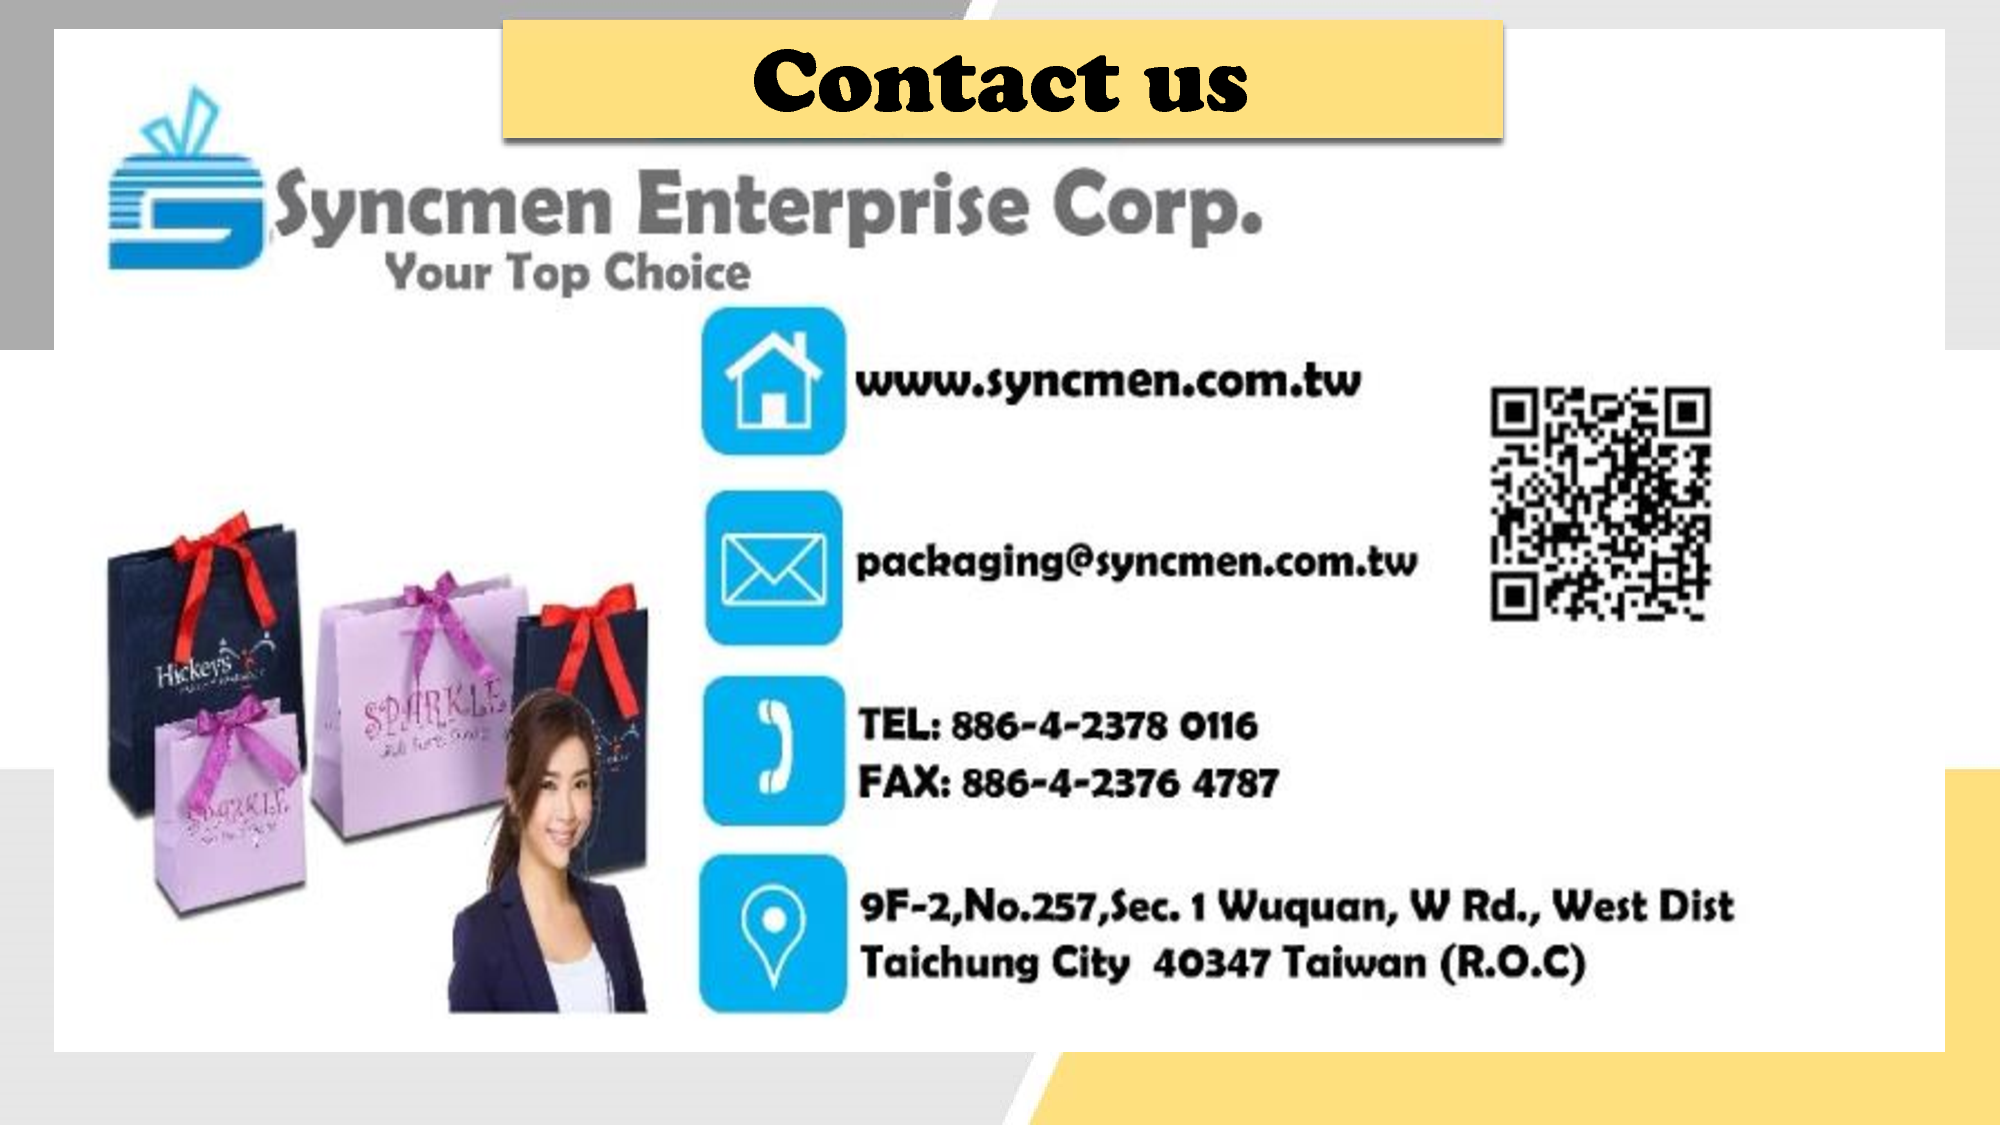 paperbag_contact us_syncmen